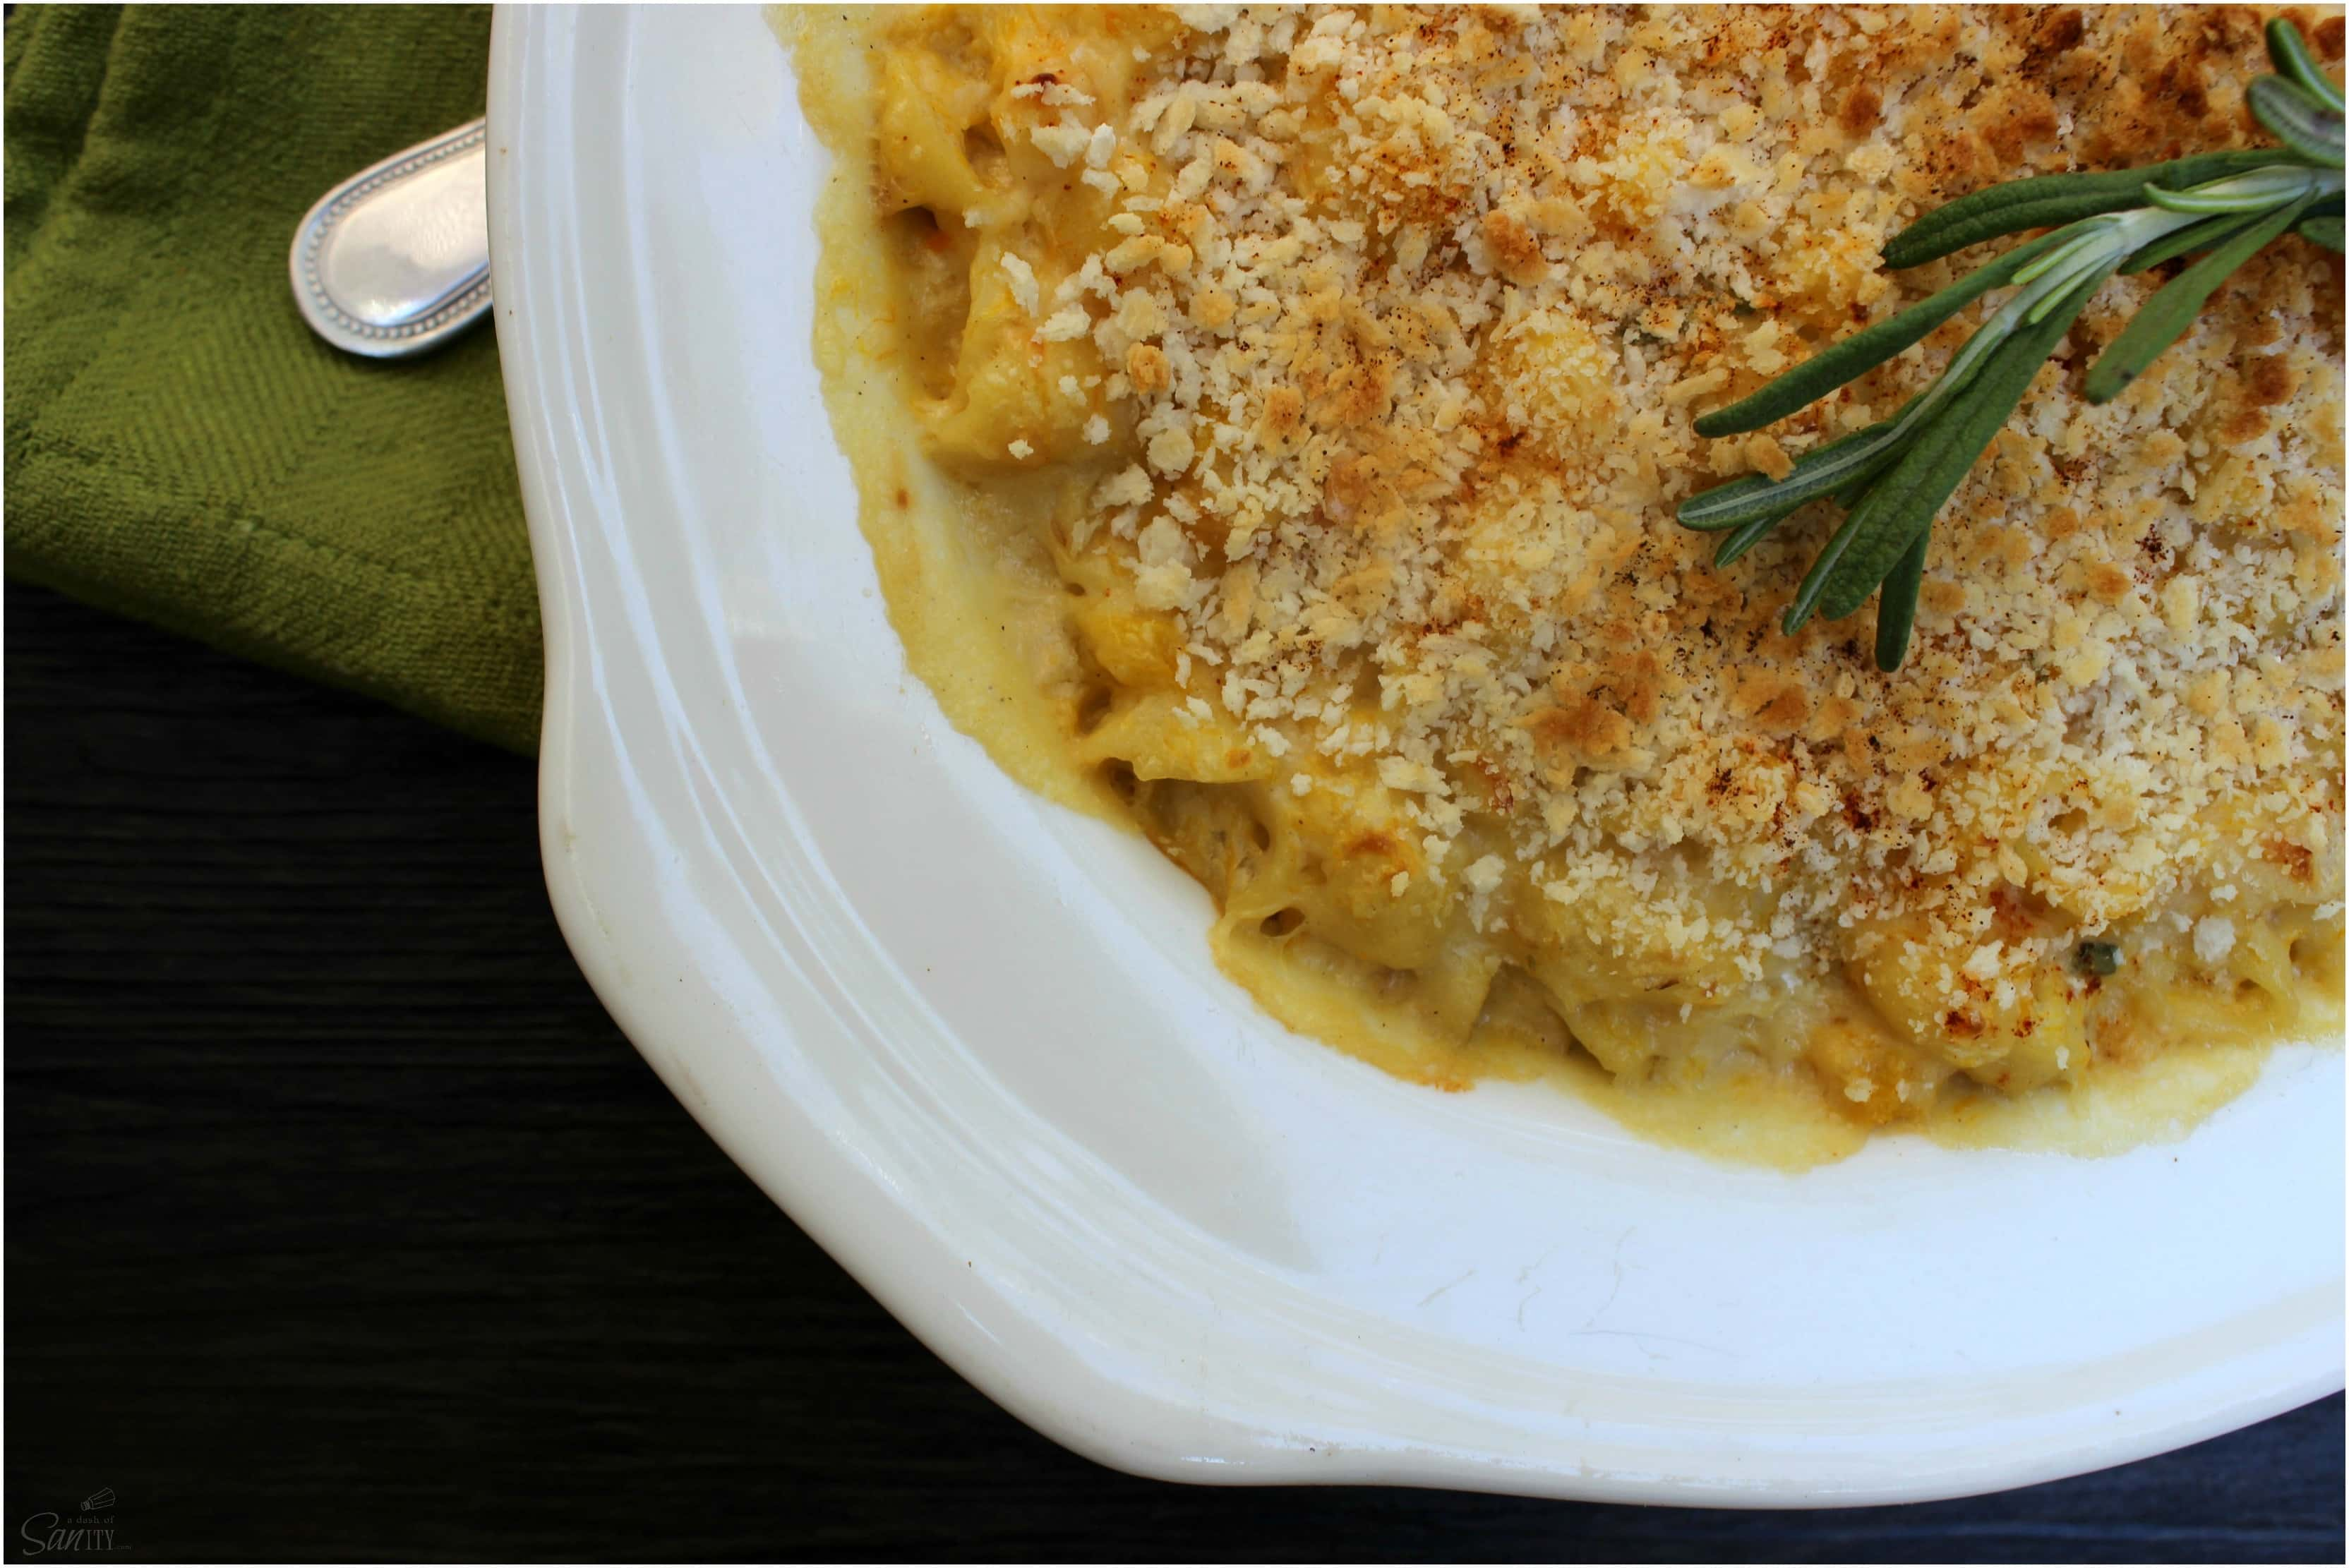 This creamy Butternut Squash Mac & Cheese is a twist on an American classic with a hint of fall. This healthier take will become a family favorite.